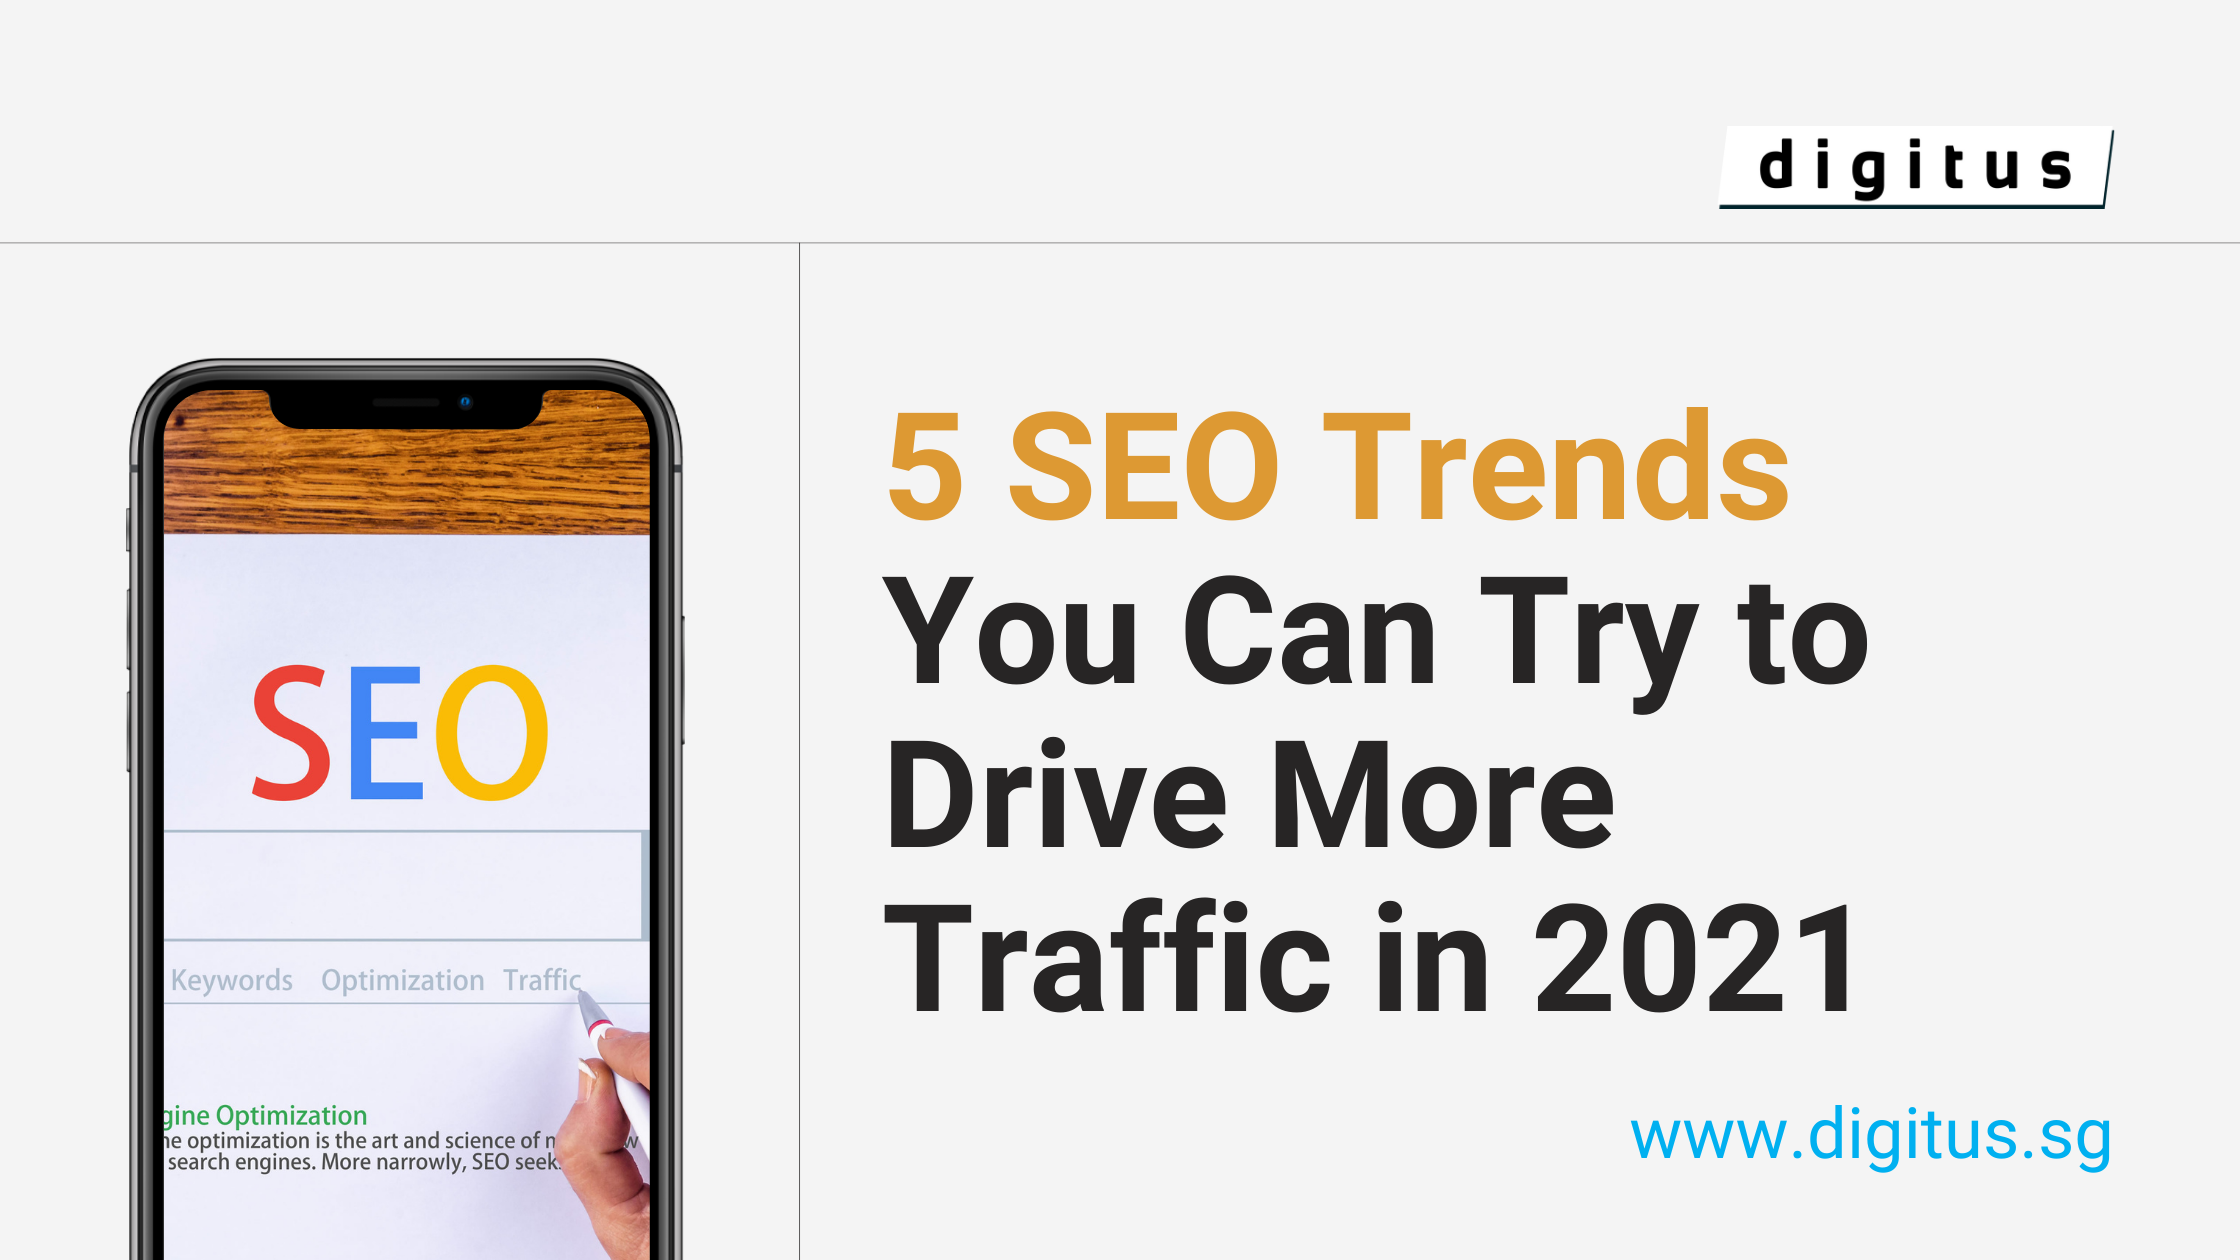 5 SEO Trends You Can Try to Drive More Traffic in 2021